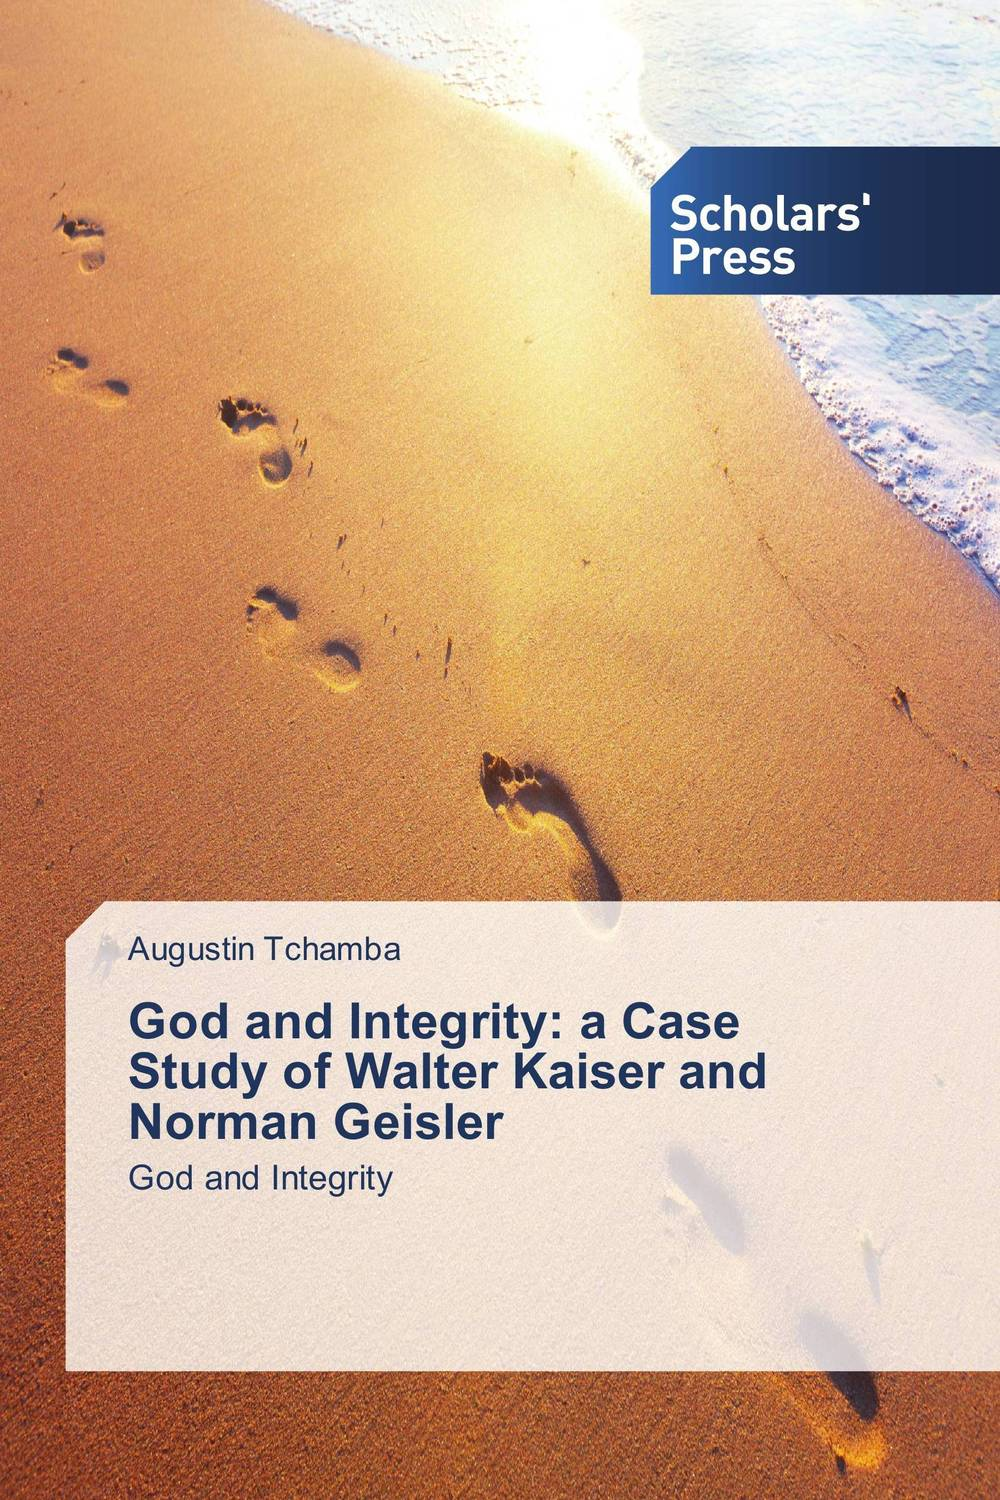 God and Integrity: a Case Study of Walter Kaiser and Norman Geisler